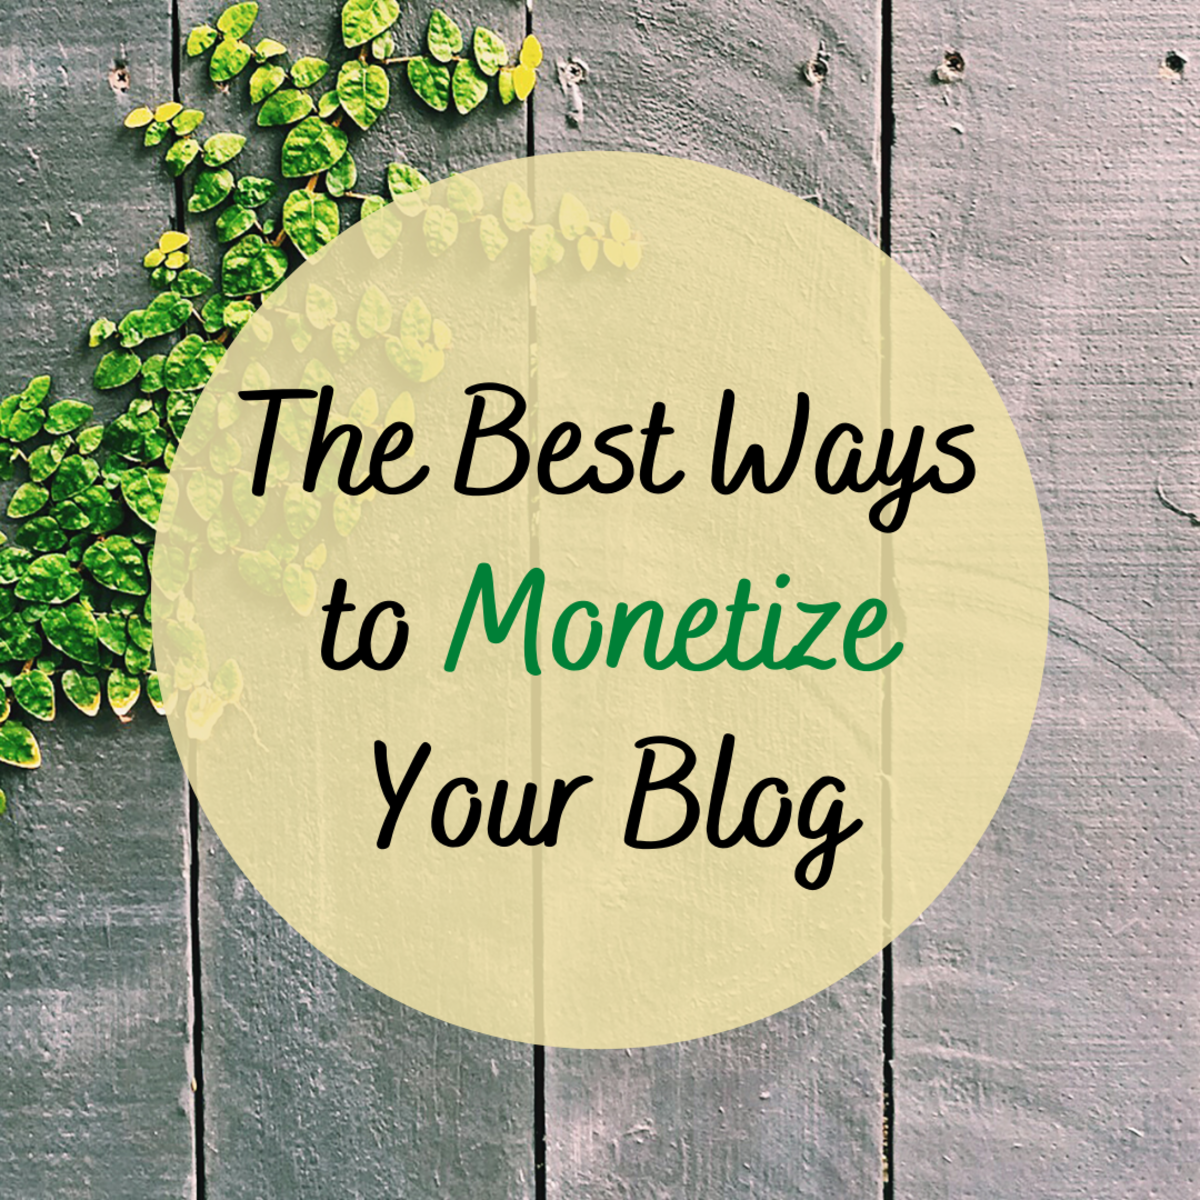 How to Monetize Your Blog: 8 of the Best Ways